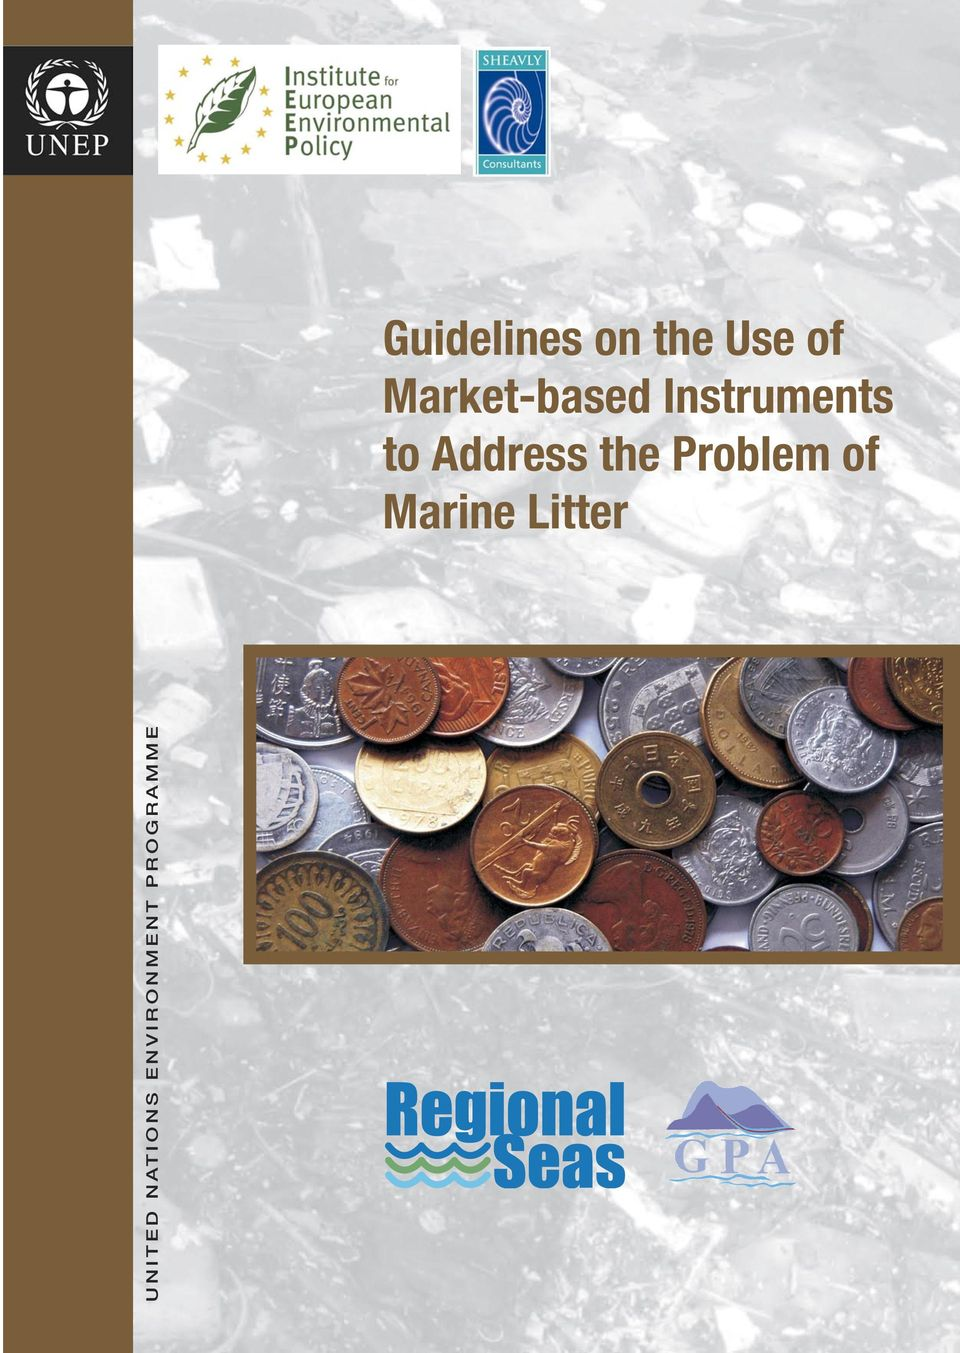 on the Use of Market-based Instruments